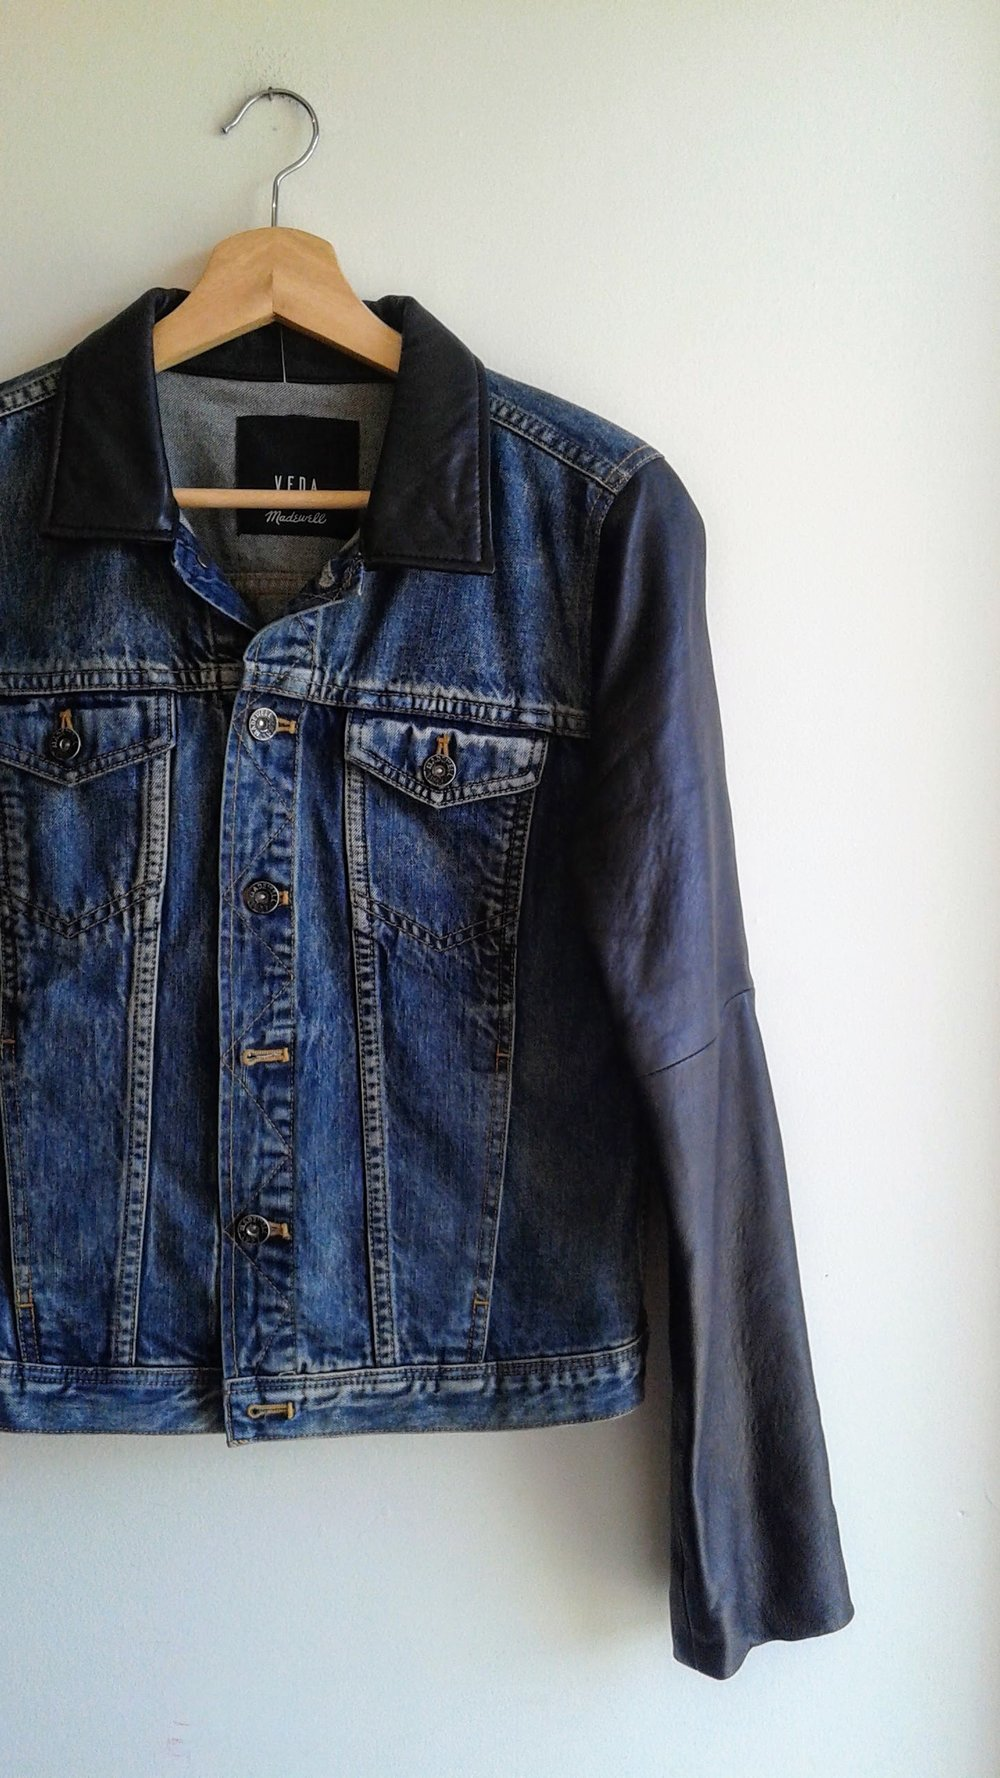 Madewell jacket; Size S, $42